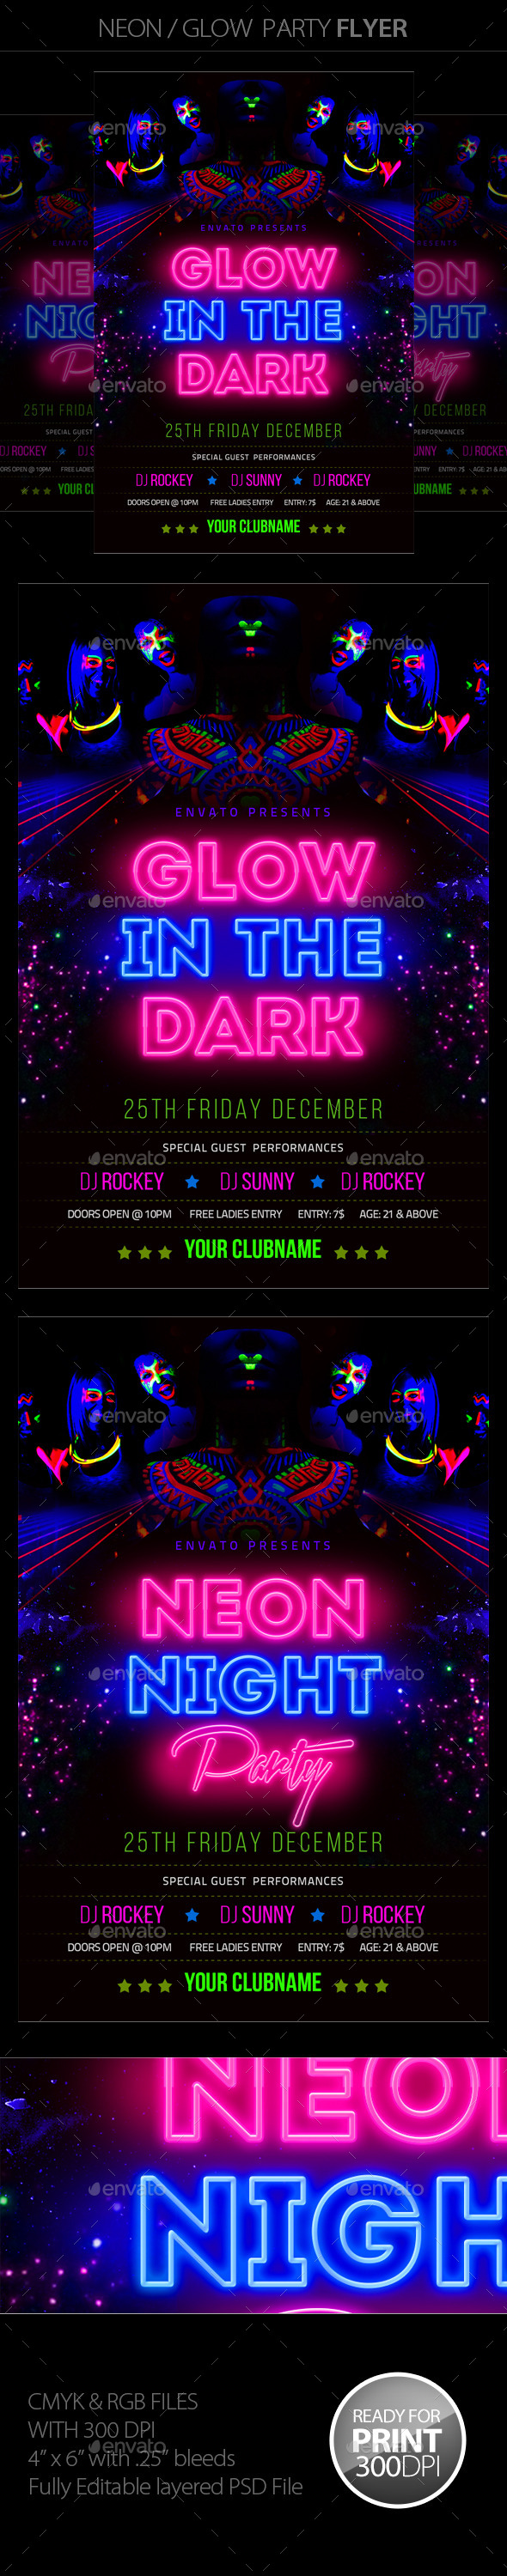 GraphicRiver Neon Glow Party Flyer 11556642